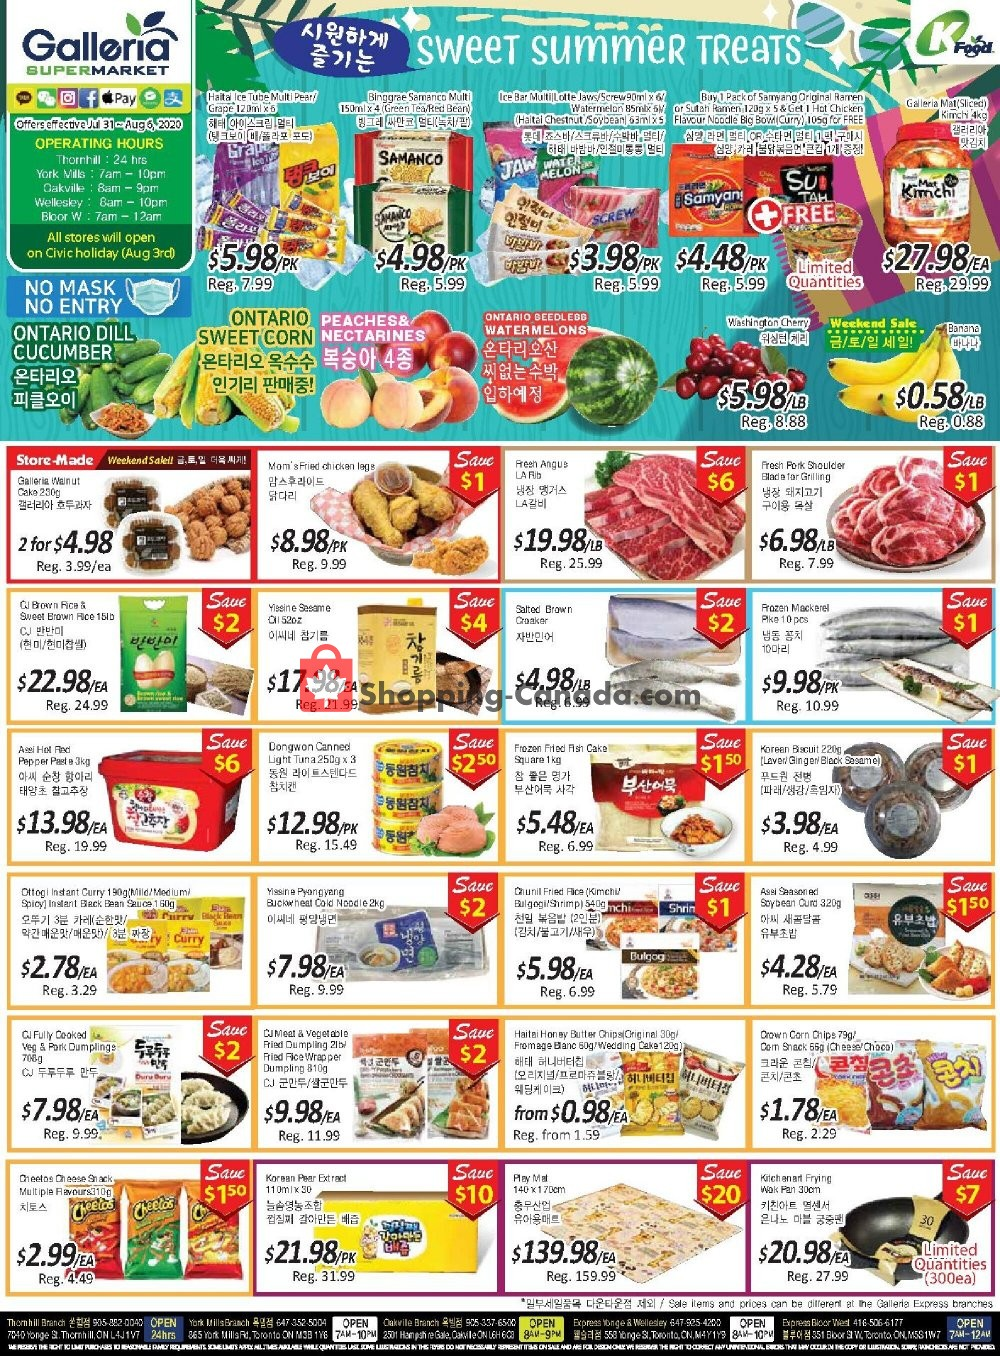 Flyer Galleria Supermarket Canada - from Friday July 31, 2020 to Thursday August 6, 2020